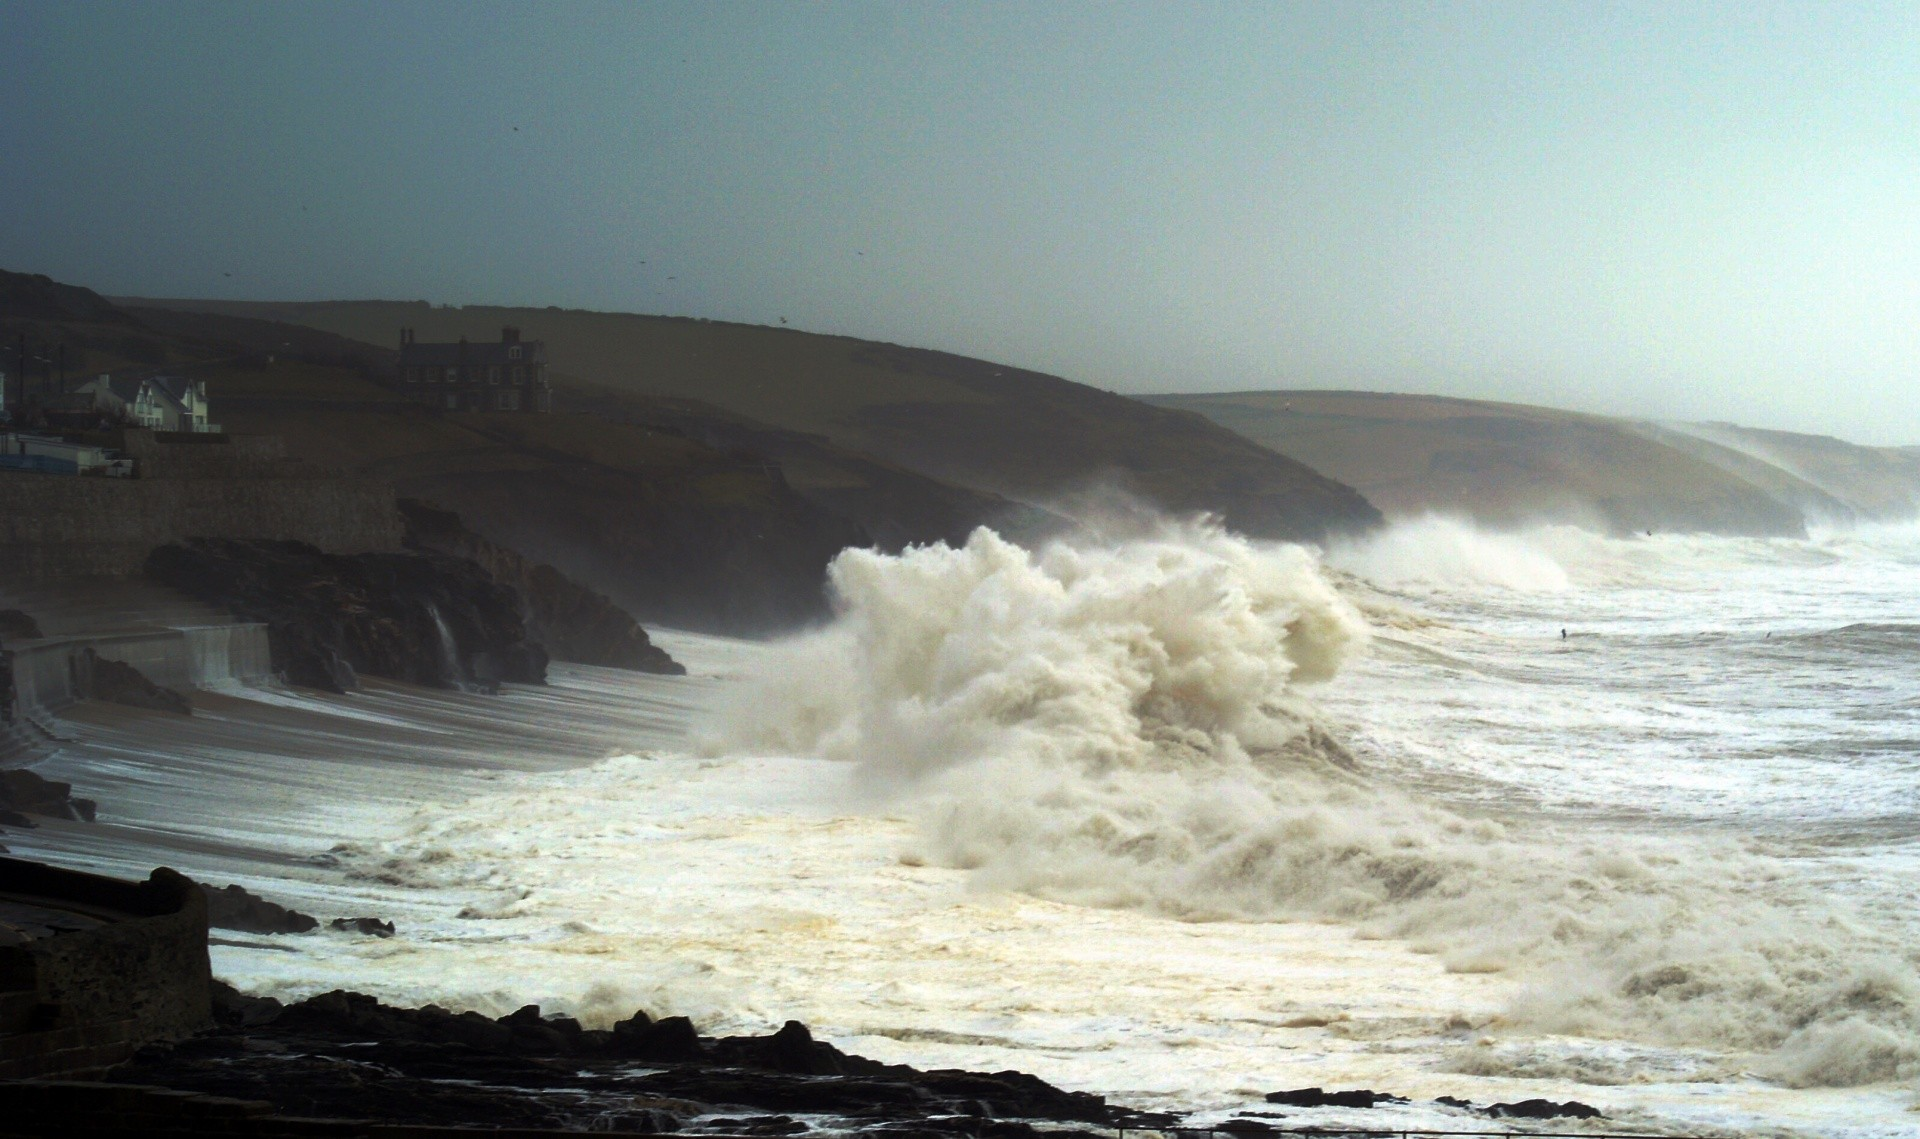 Poontang surfer's photo of Porthleven